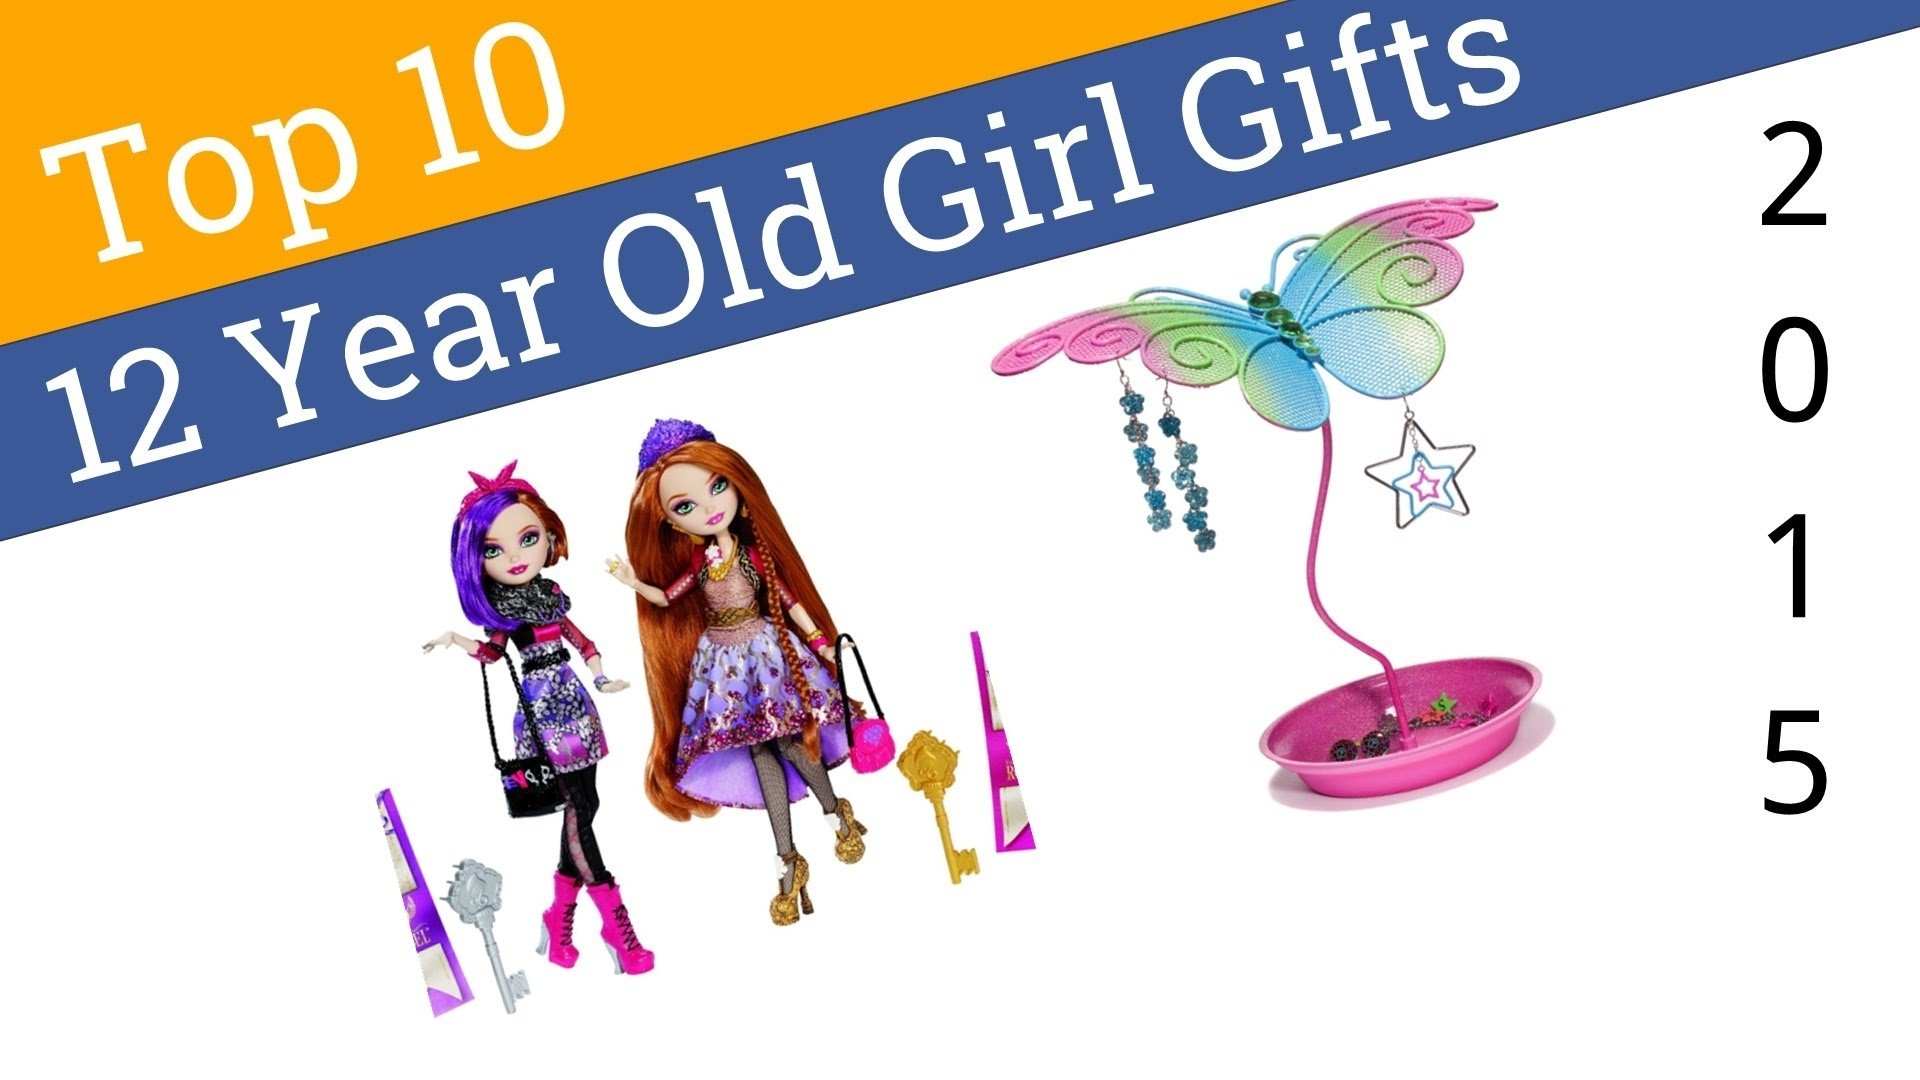 10 Lovable 10 Year Old Girl Gift Ideas 10 best 12 year old girl gifts 2015 youtube 2020